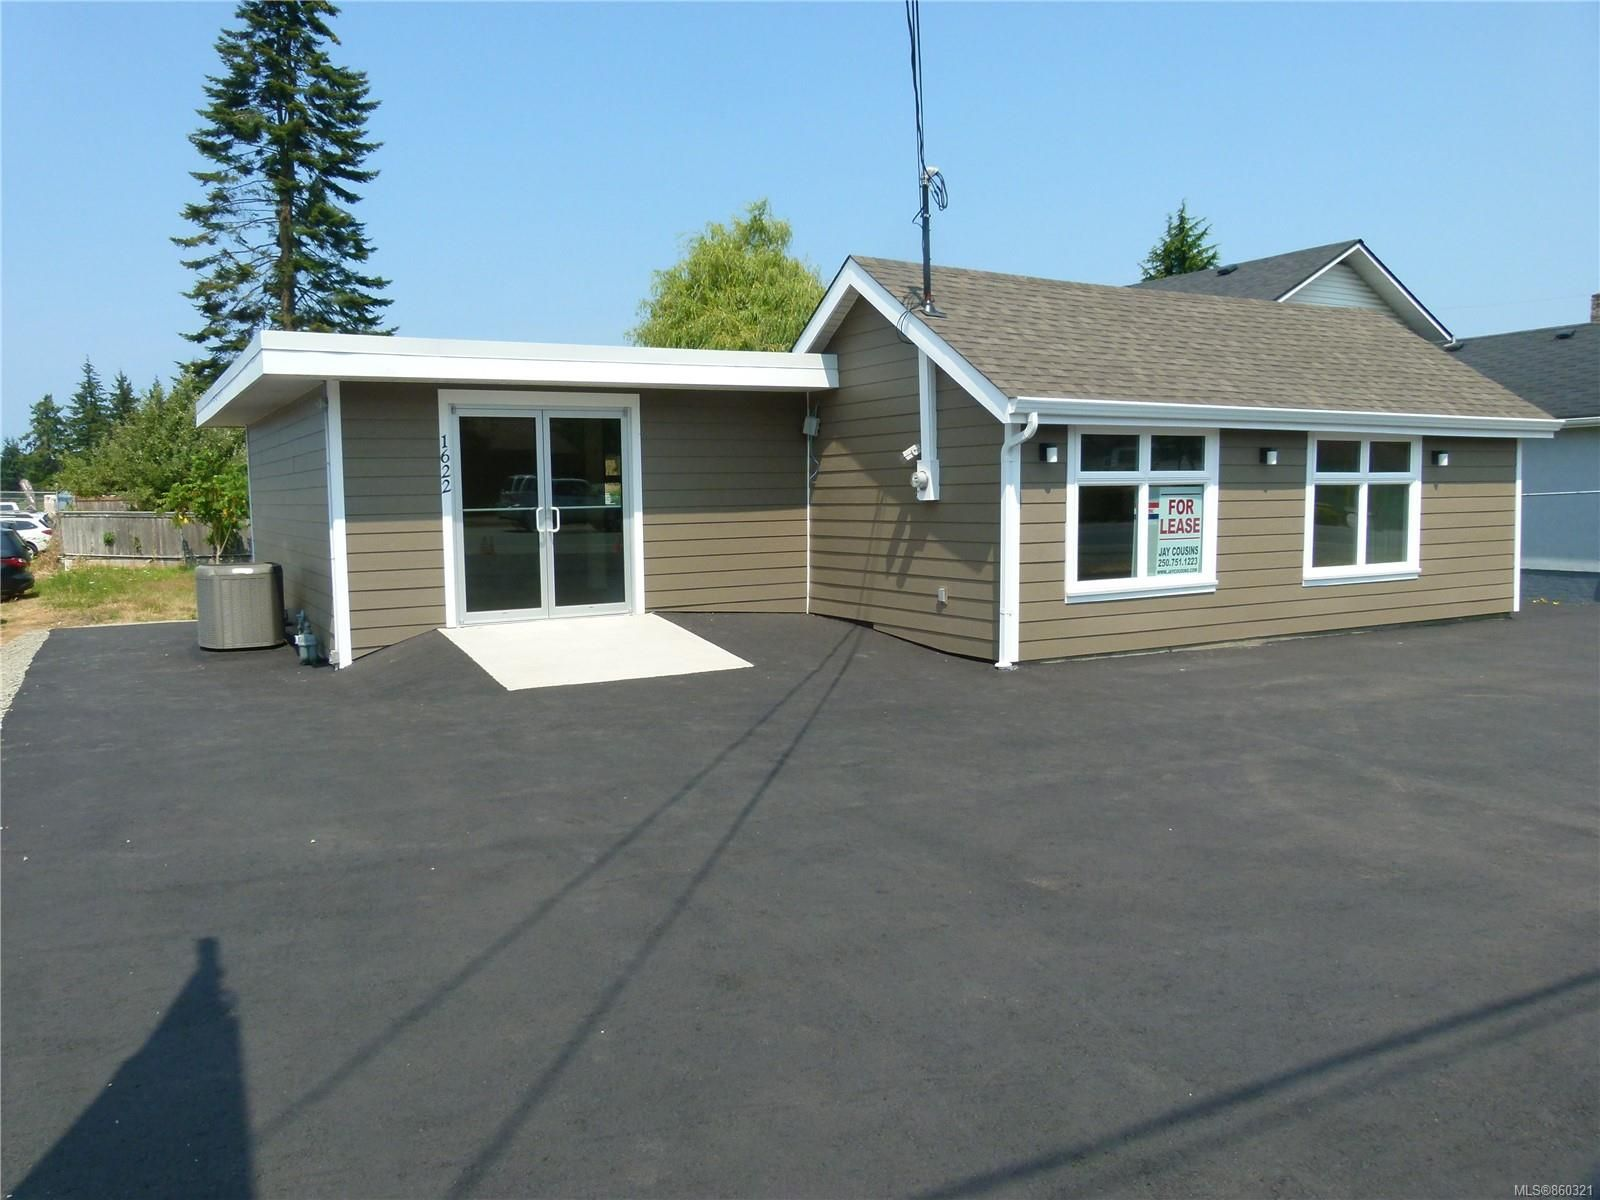 Main Photo: 1622 Northfield Rd in : Na Central Nanaimo Industrial for lease (Nanaimo)  : MLS®# 860321